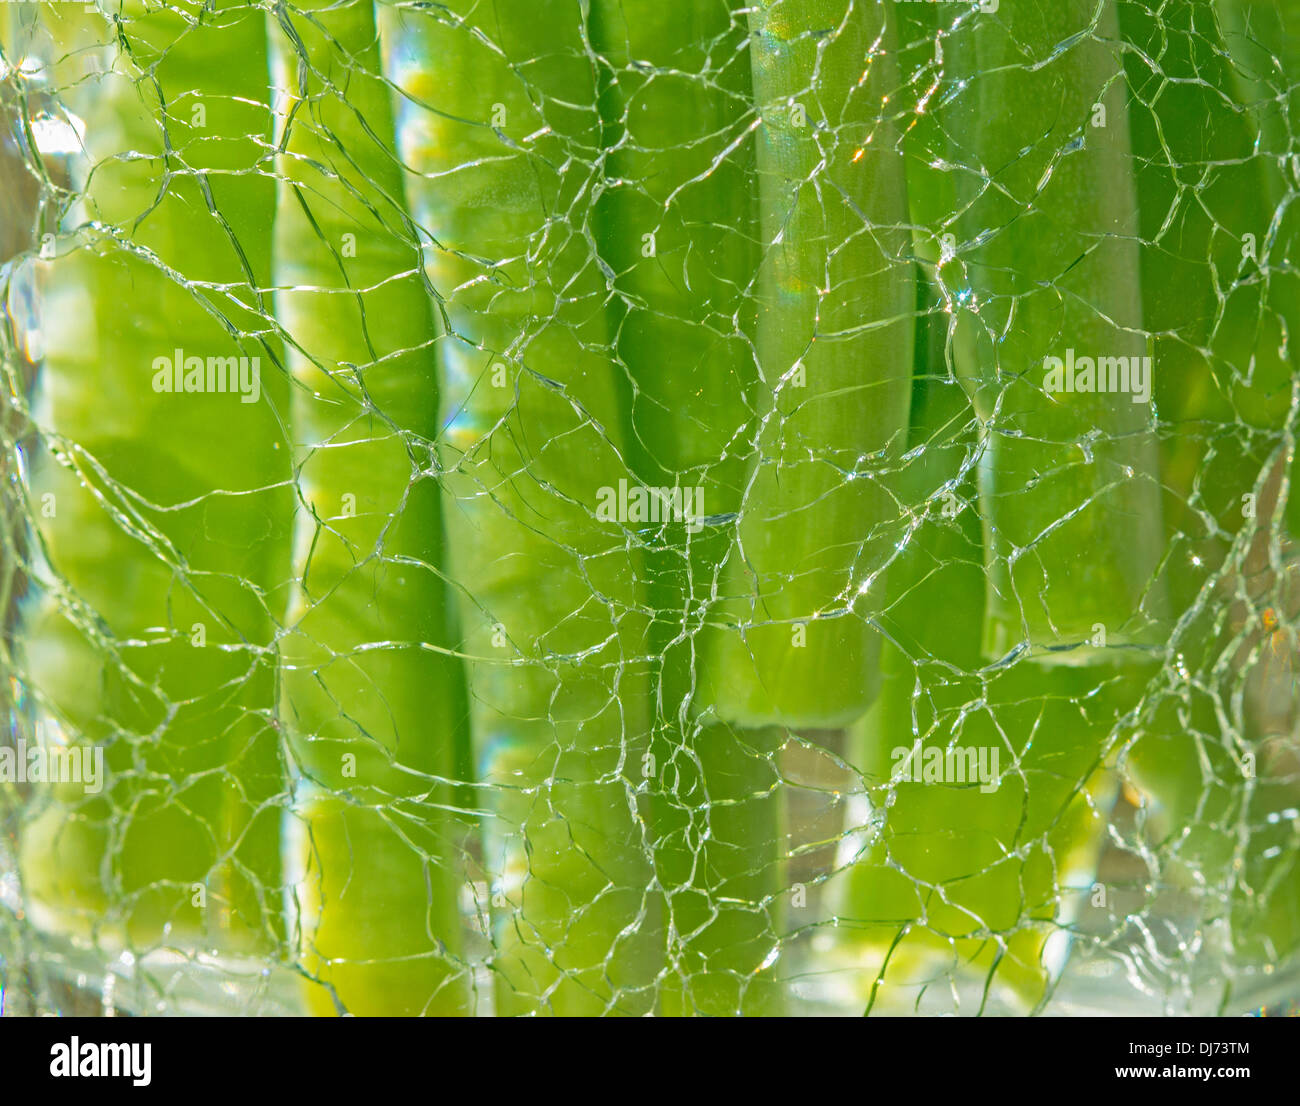 Flower stems in water behind in vase made from cracked glass. - Stock Image